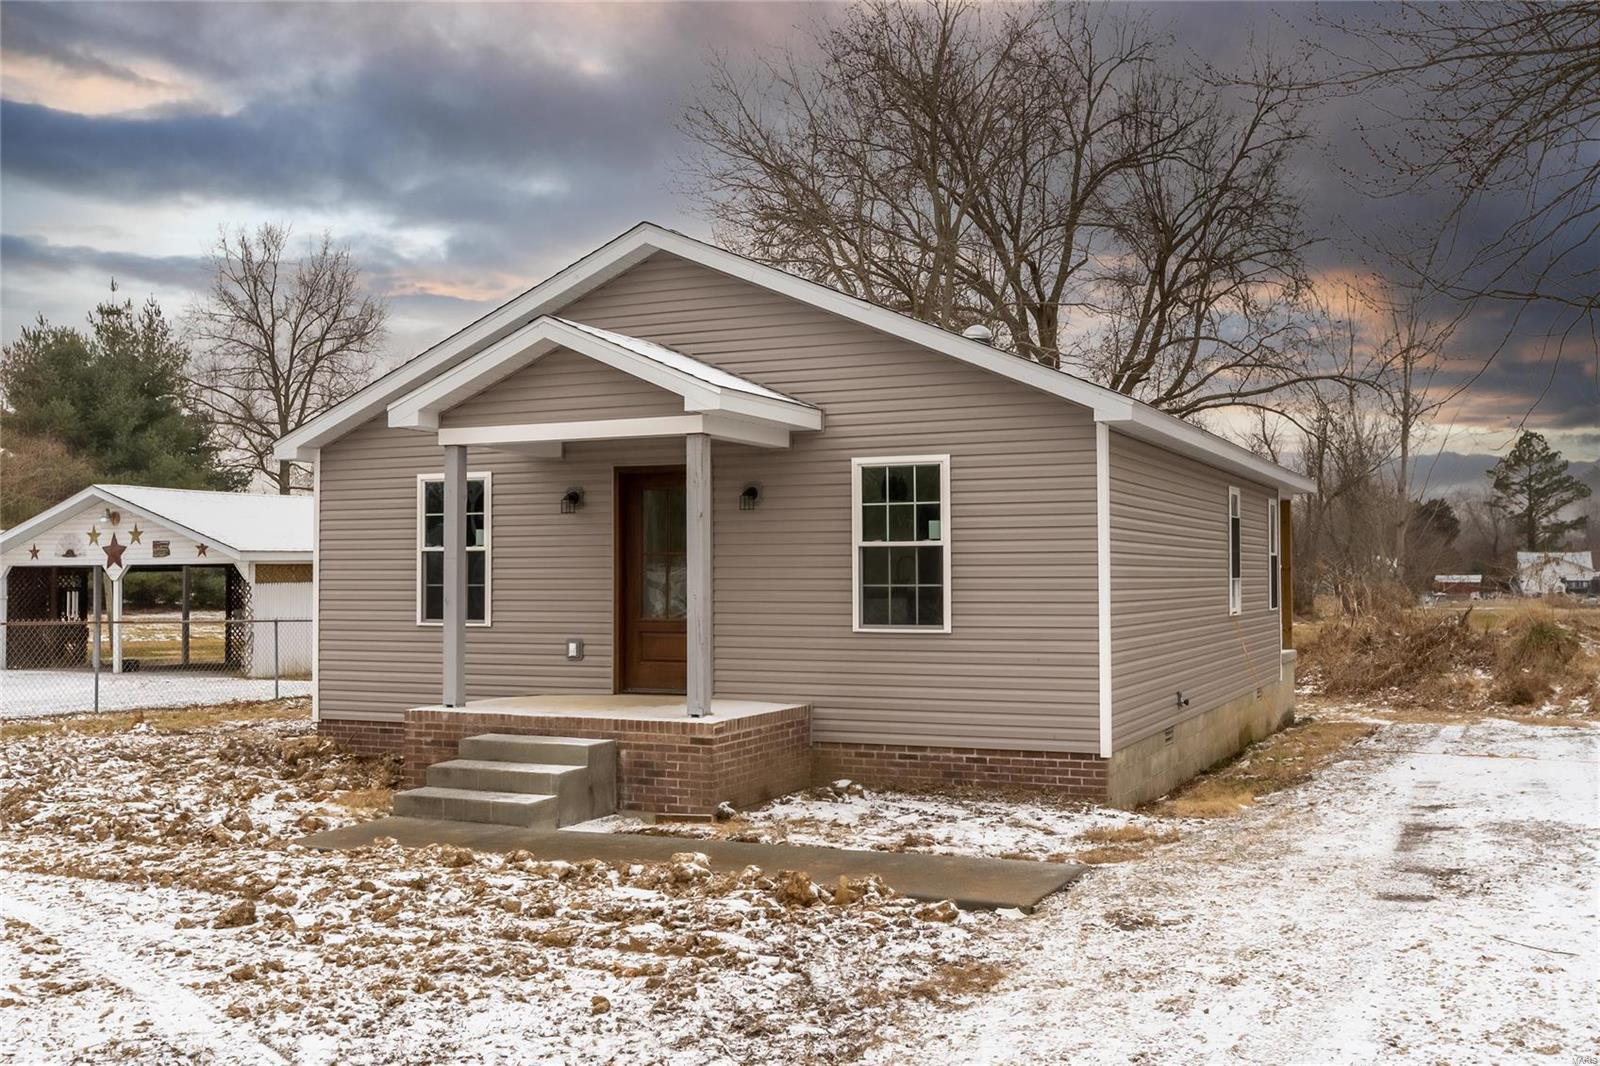 117 N 35th Property Photo - Herrin, IL real estate listing